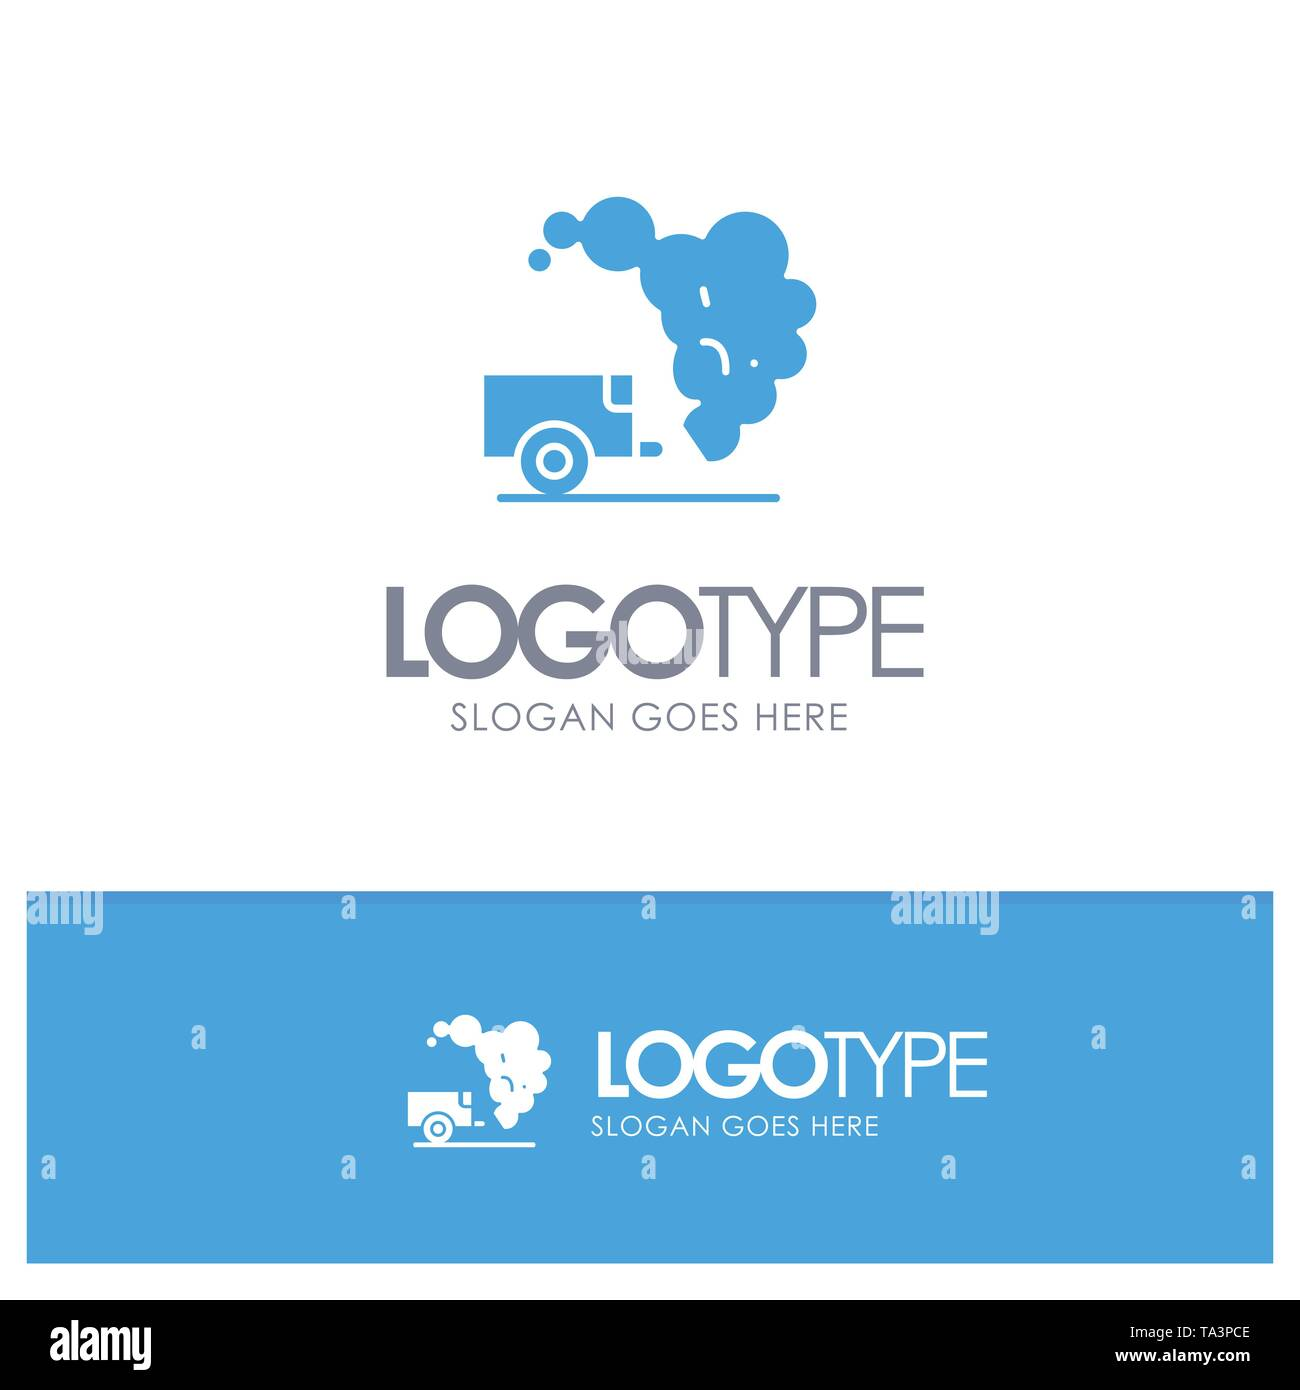 Dump, Environment, Garbage, Pollution Blue Solid Logo with place for tagline - Stock Image